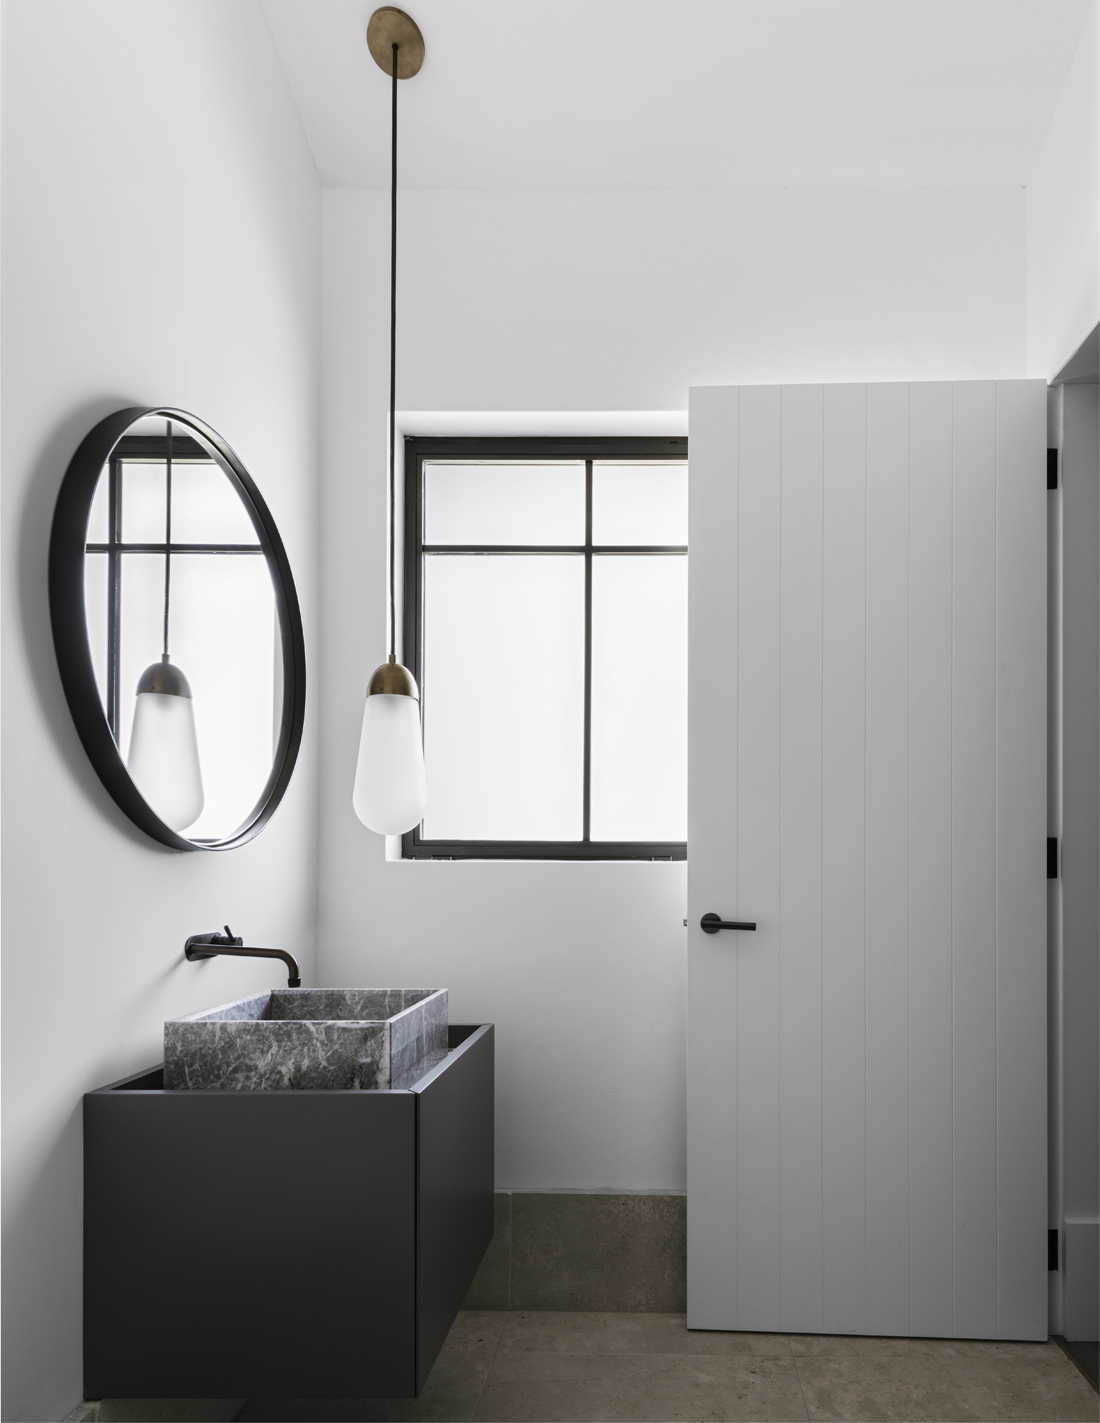 Small budget bathroom via Ollie & Sebs Haus